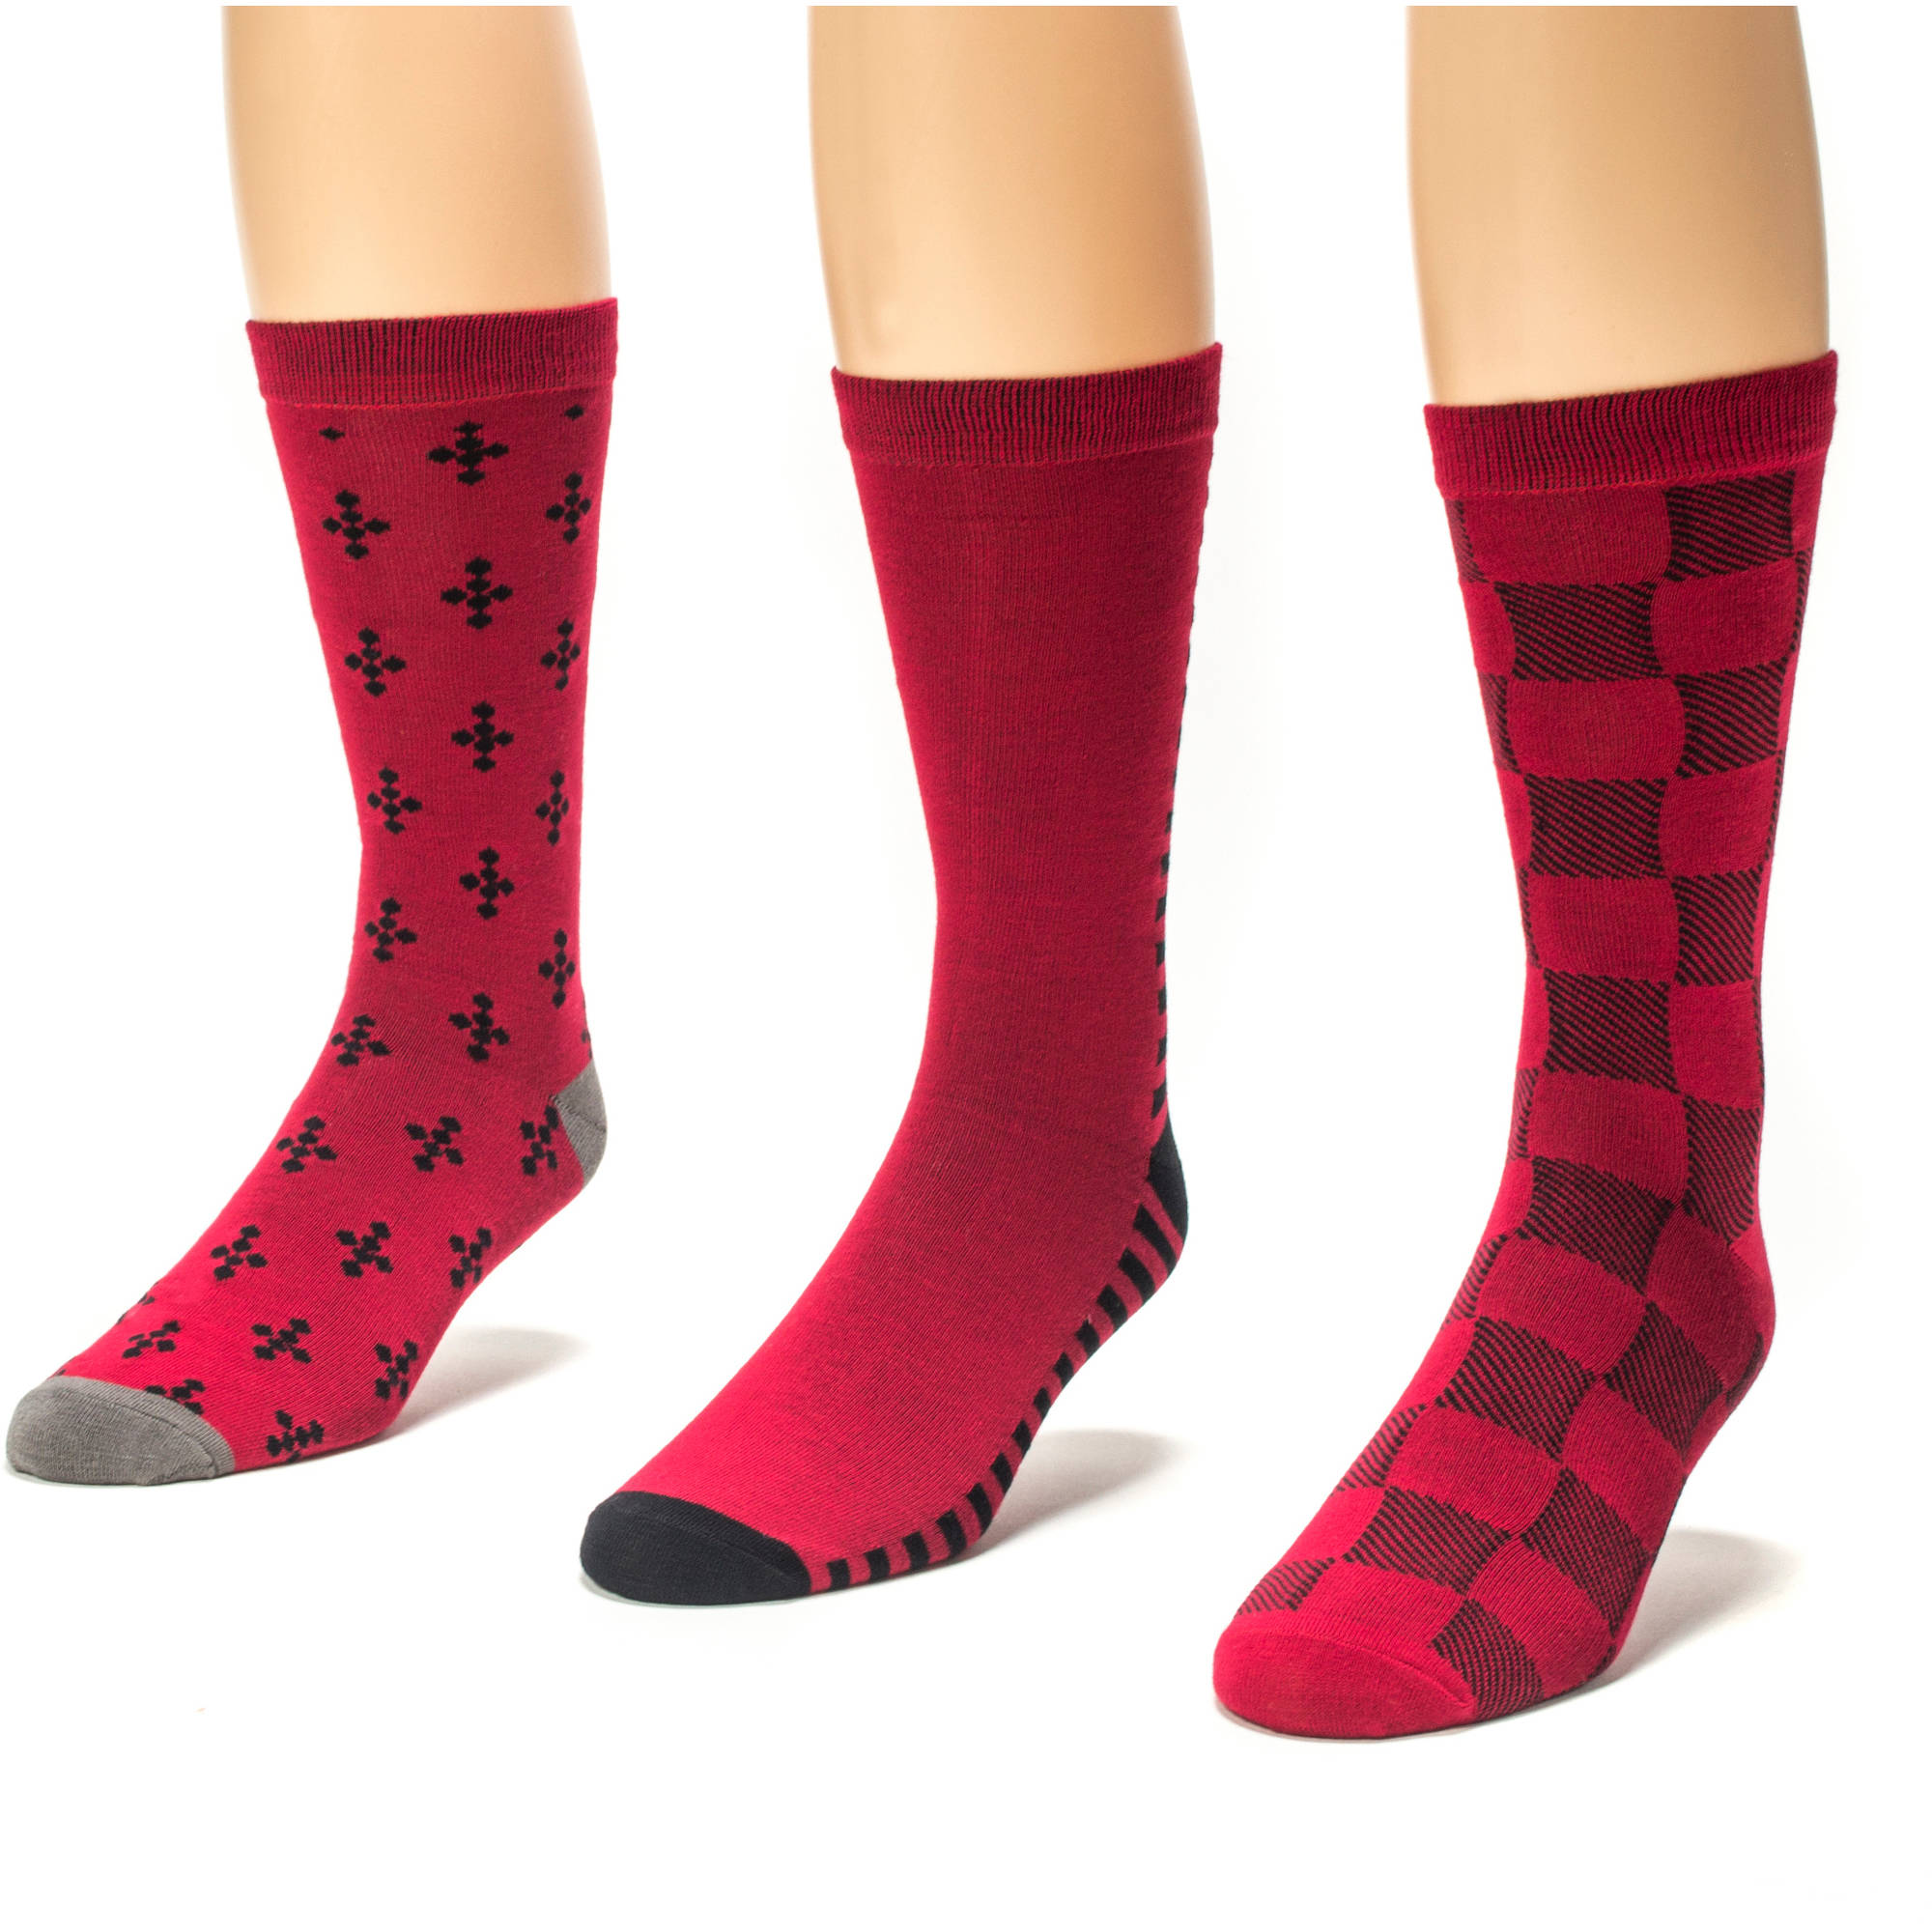 MUK LUKS Men's 3 Pair Crew Sock Pack